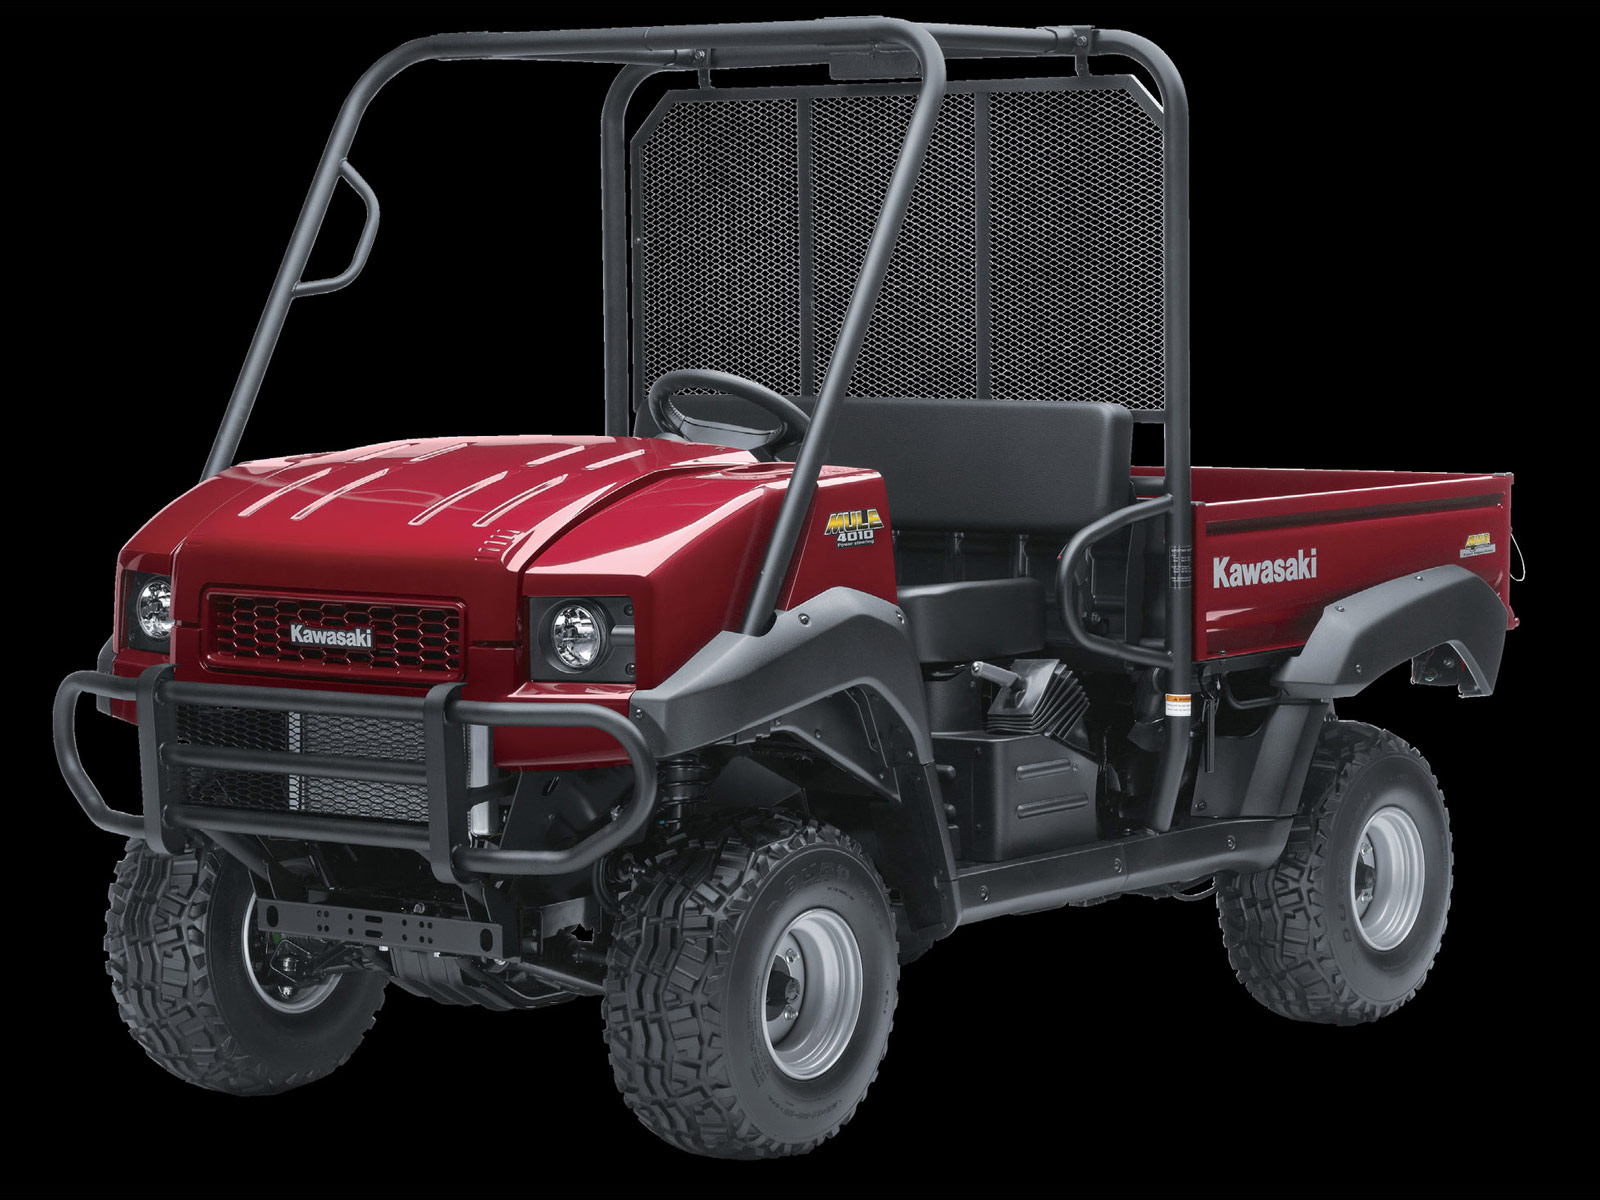 hight resolution of 2013 kawasaki mule 4010 4x4 atv pictures 480x360 pixels